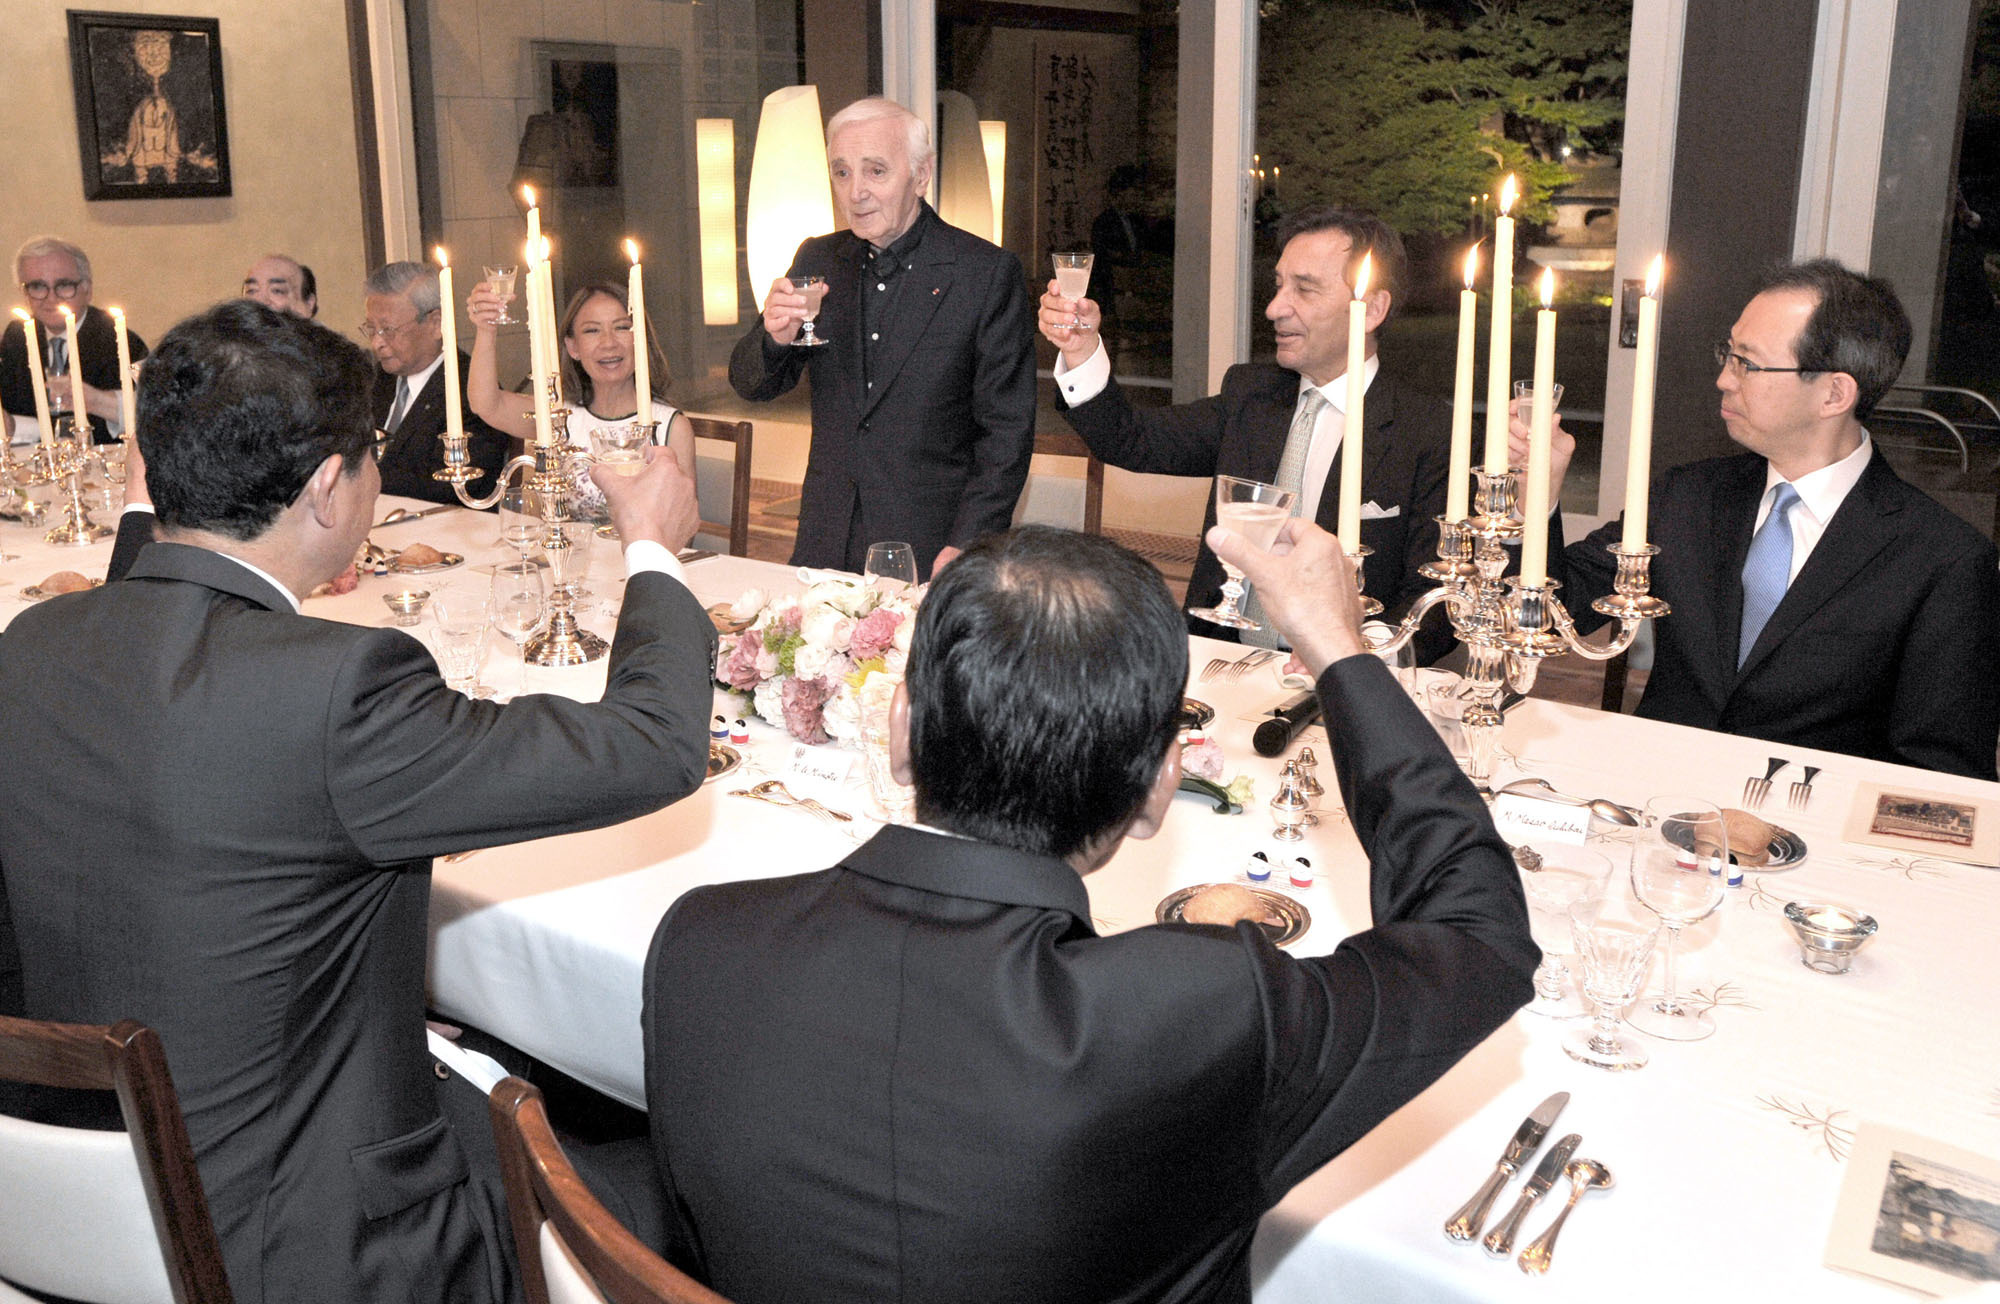 Legendary chansonnier Charles Aznavour makes a toast at the dinner at the Ambassador's residence in Tokyo on June 17. | YOSHIAKI MIURA